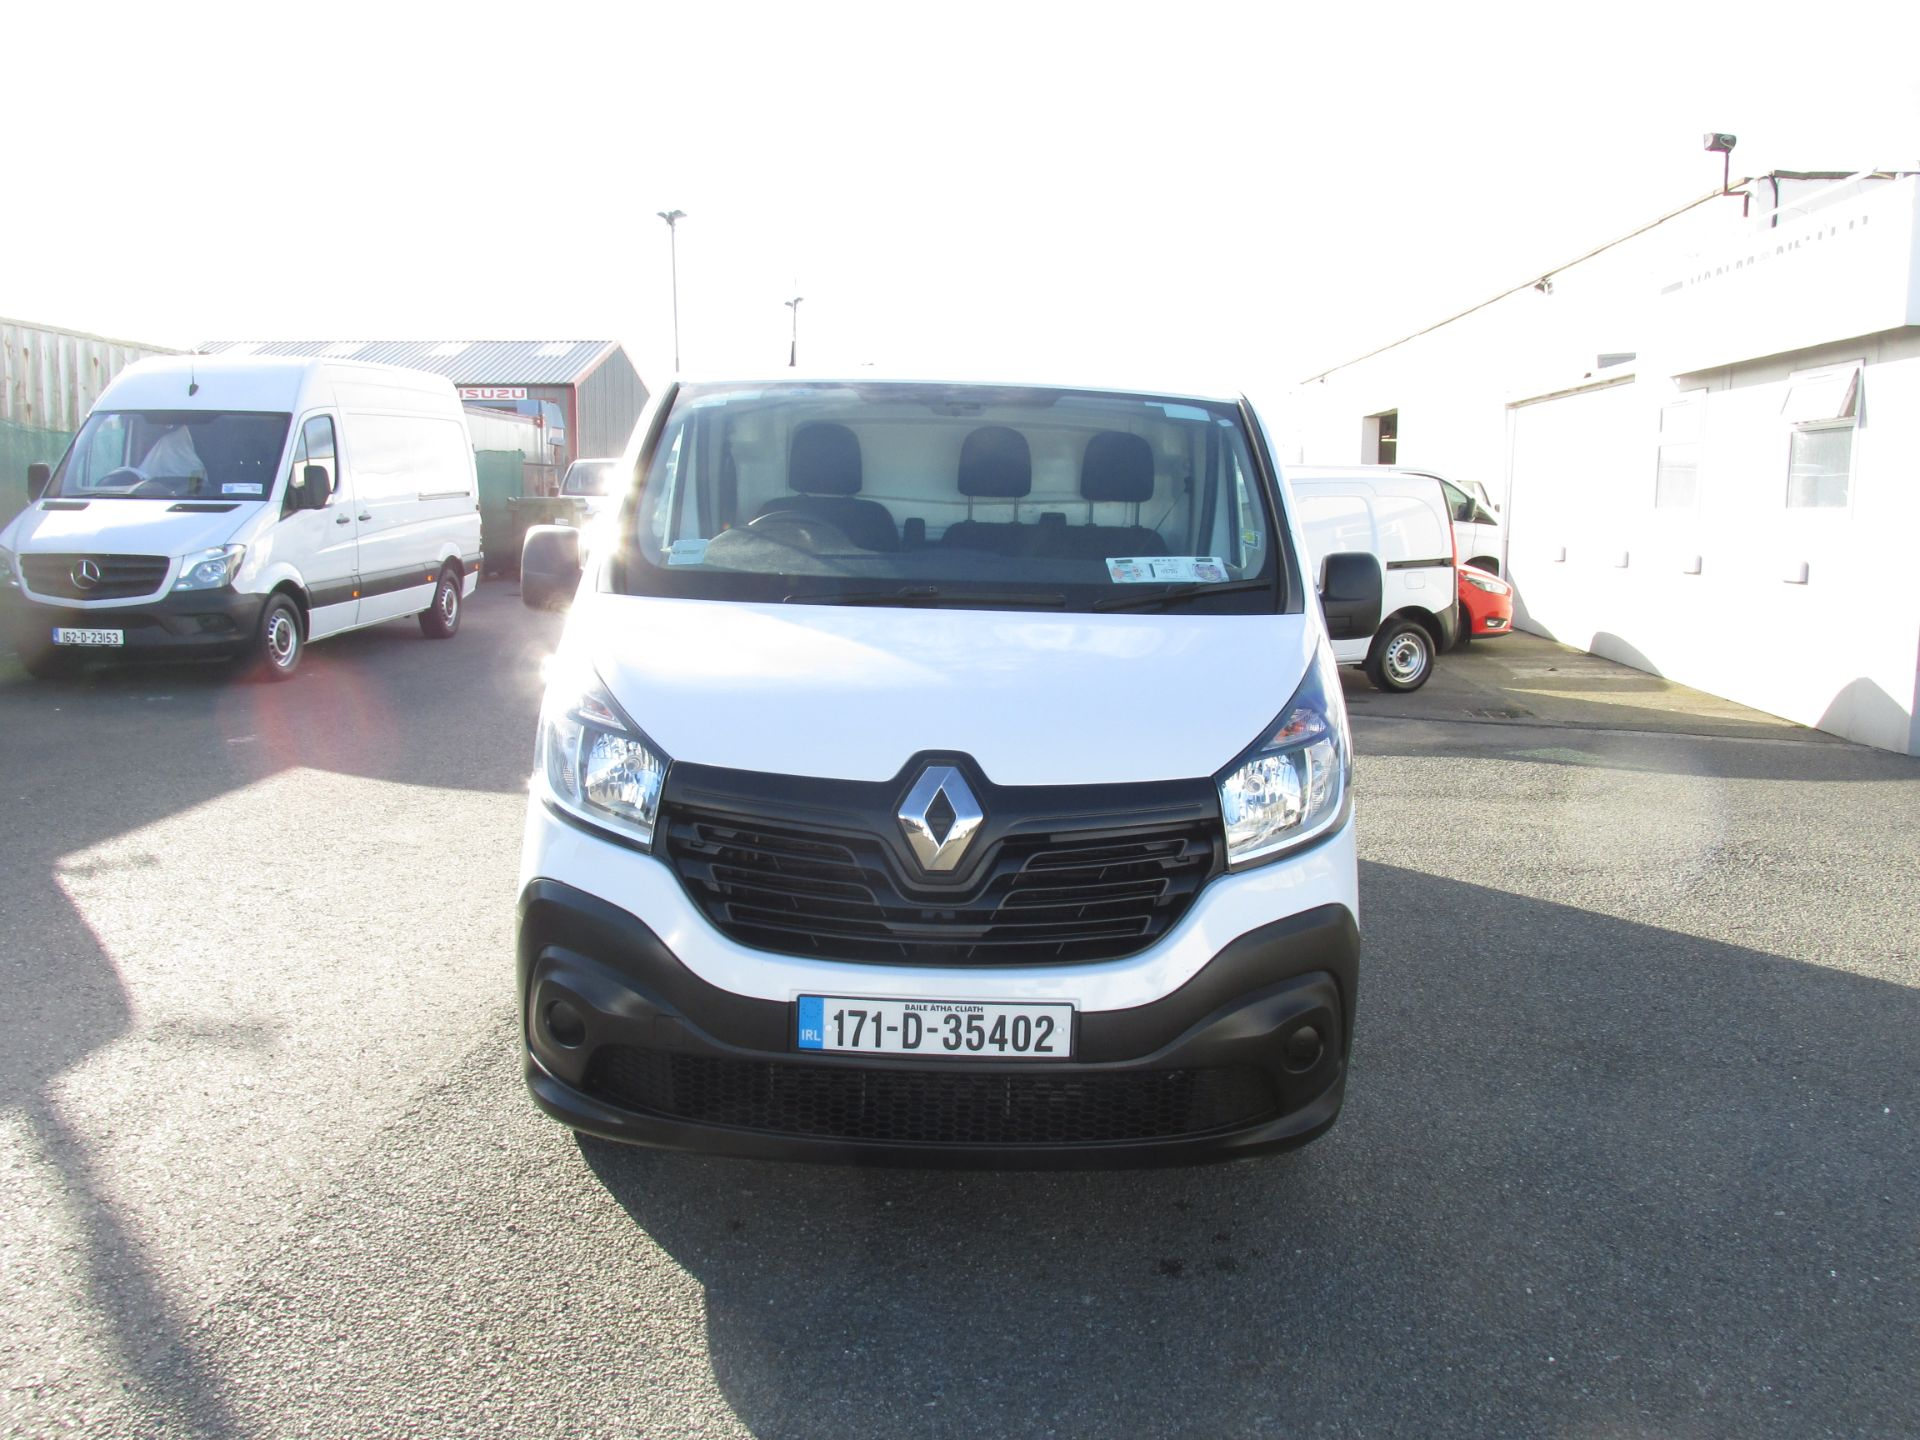 2017 Renault Trafic LL29 DCI 120 Business 3DR (171D35402) Image 2